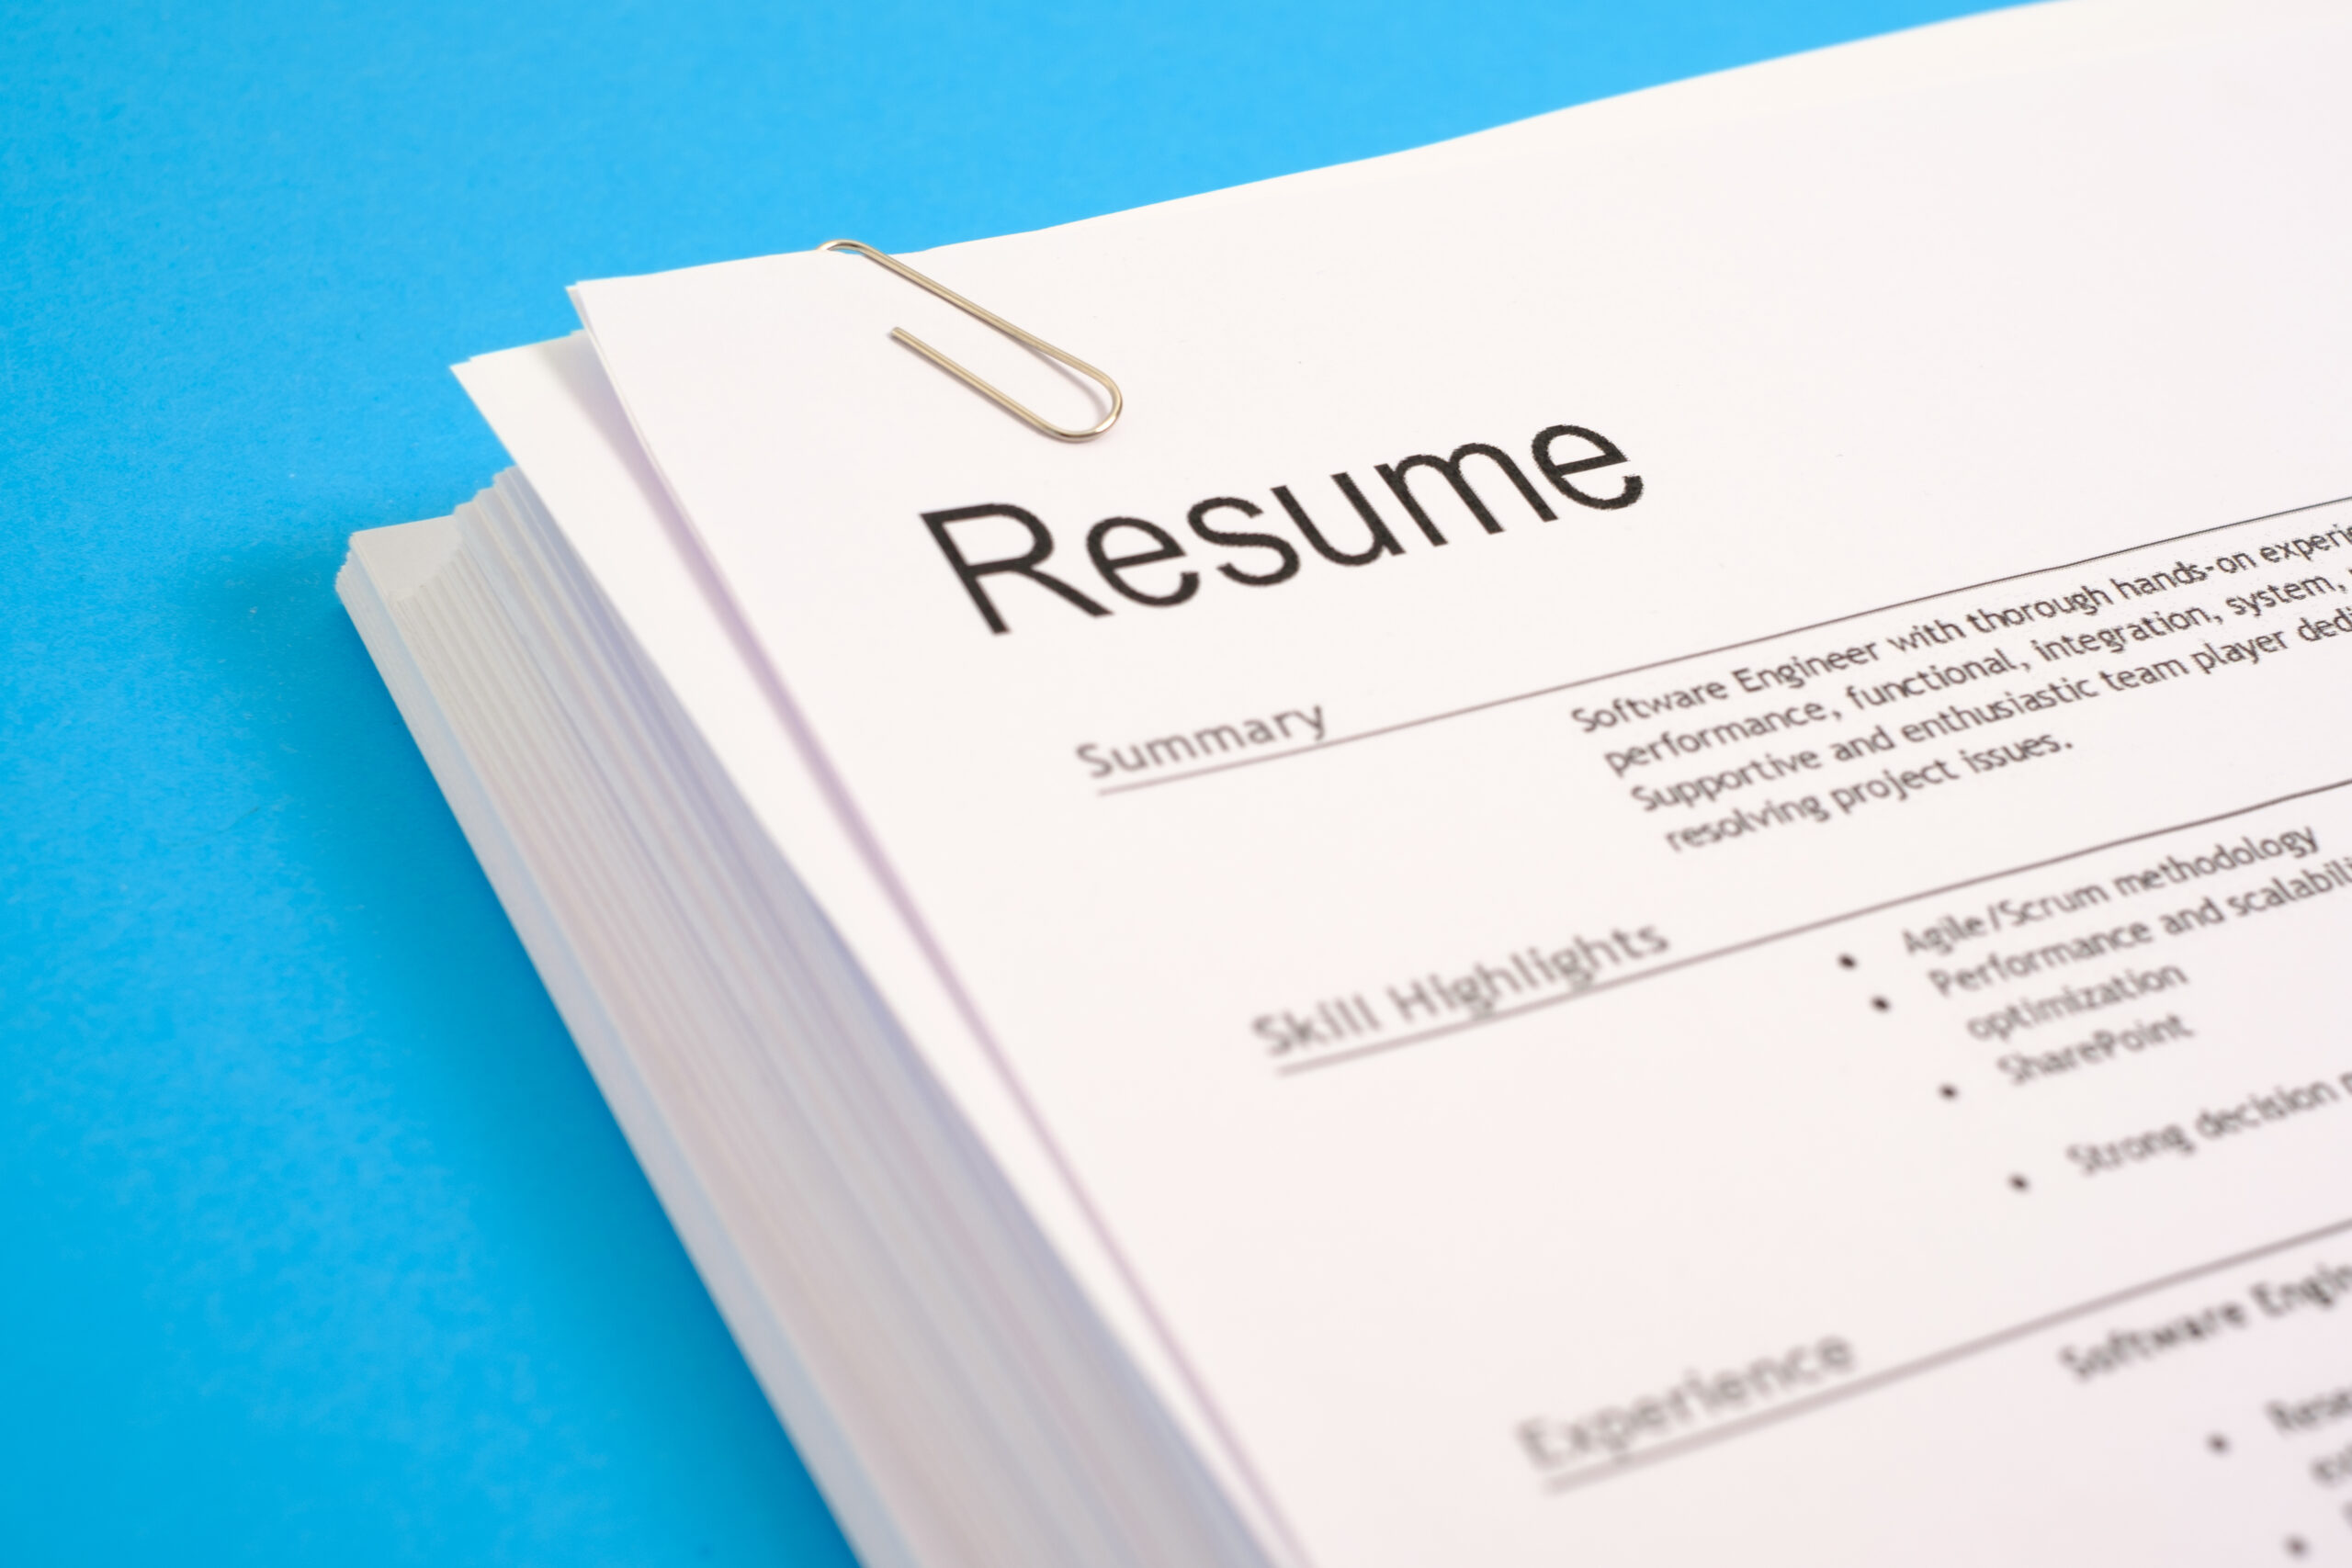 Getting started with a resume